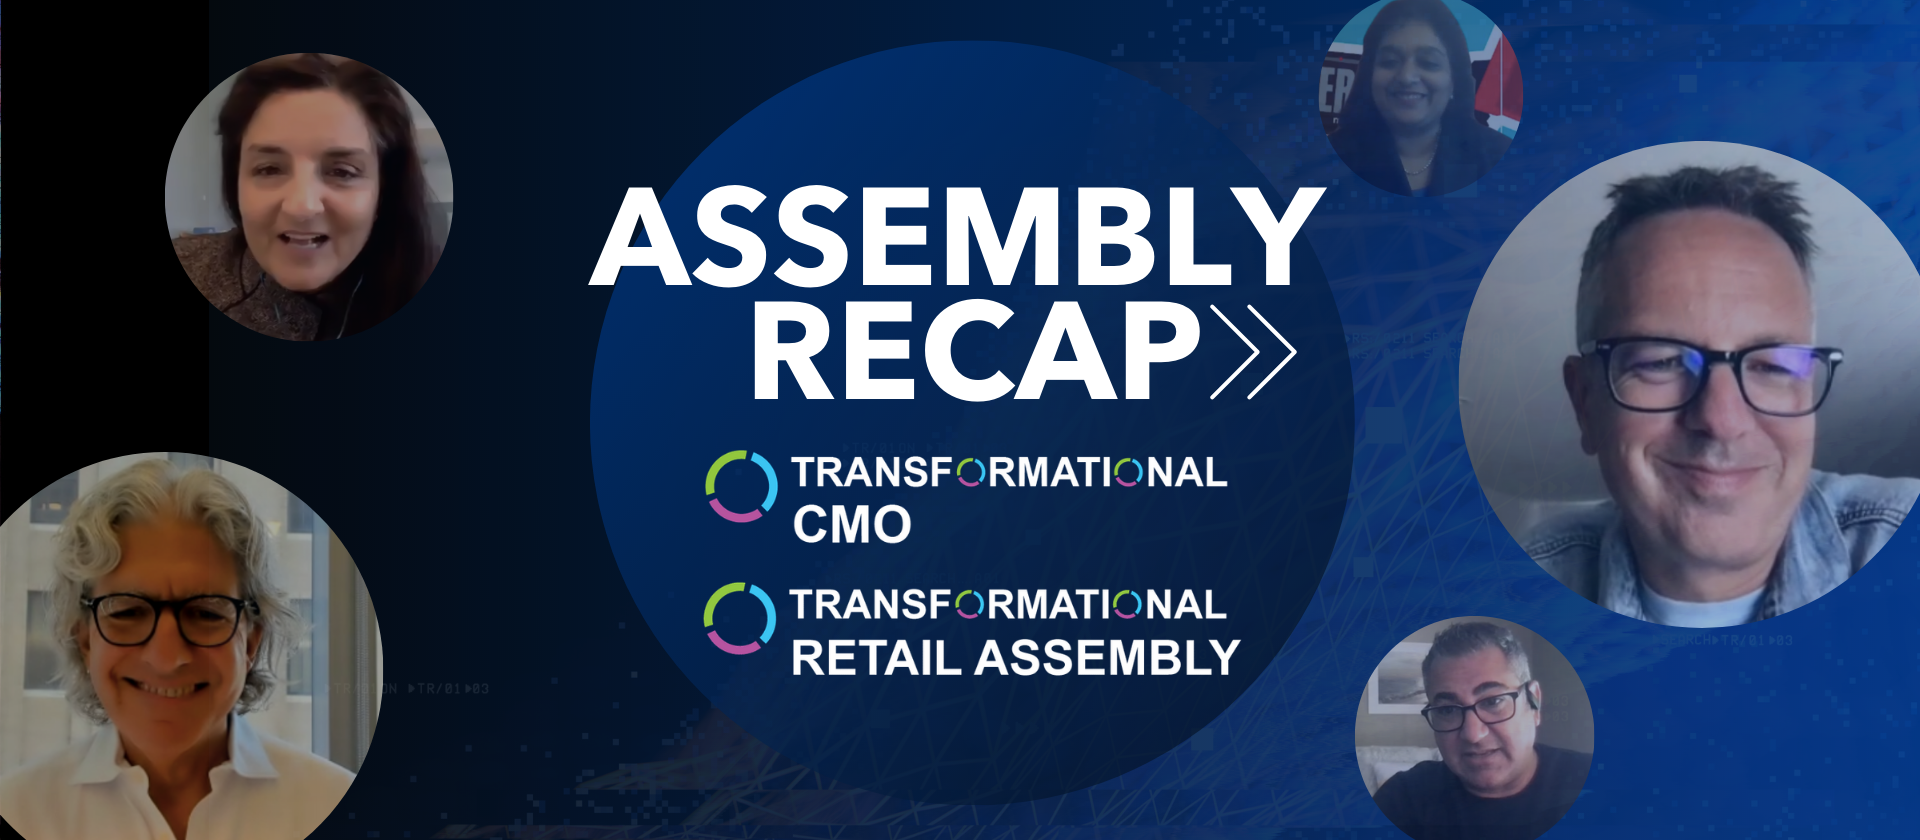 Here's What You Missed at the Transformational CMO & Retail Assemby